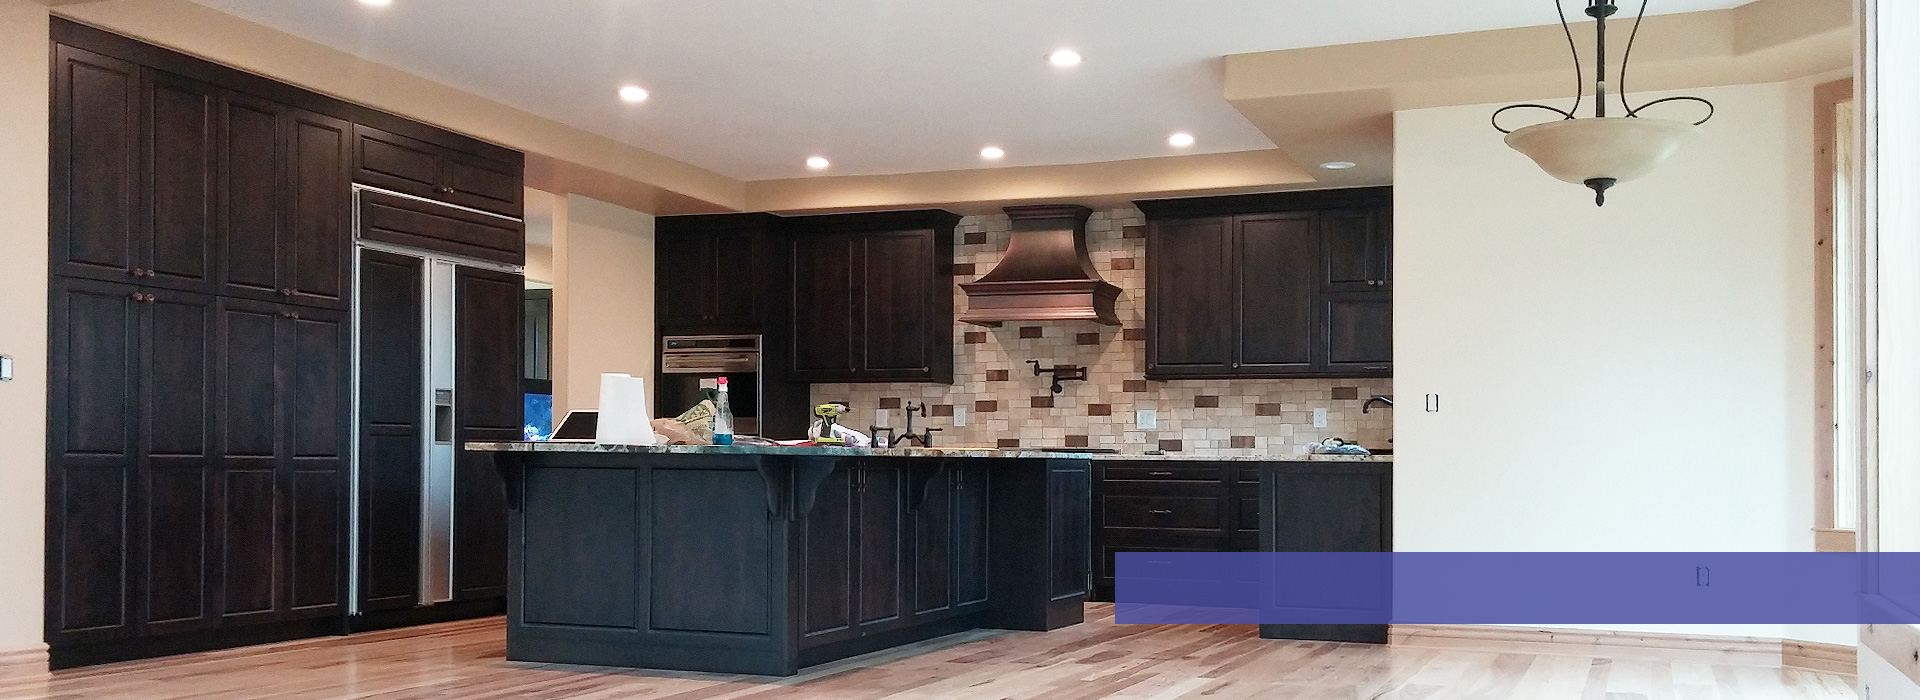 painting contractor denver co